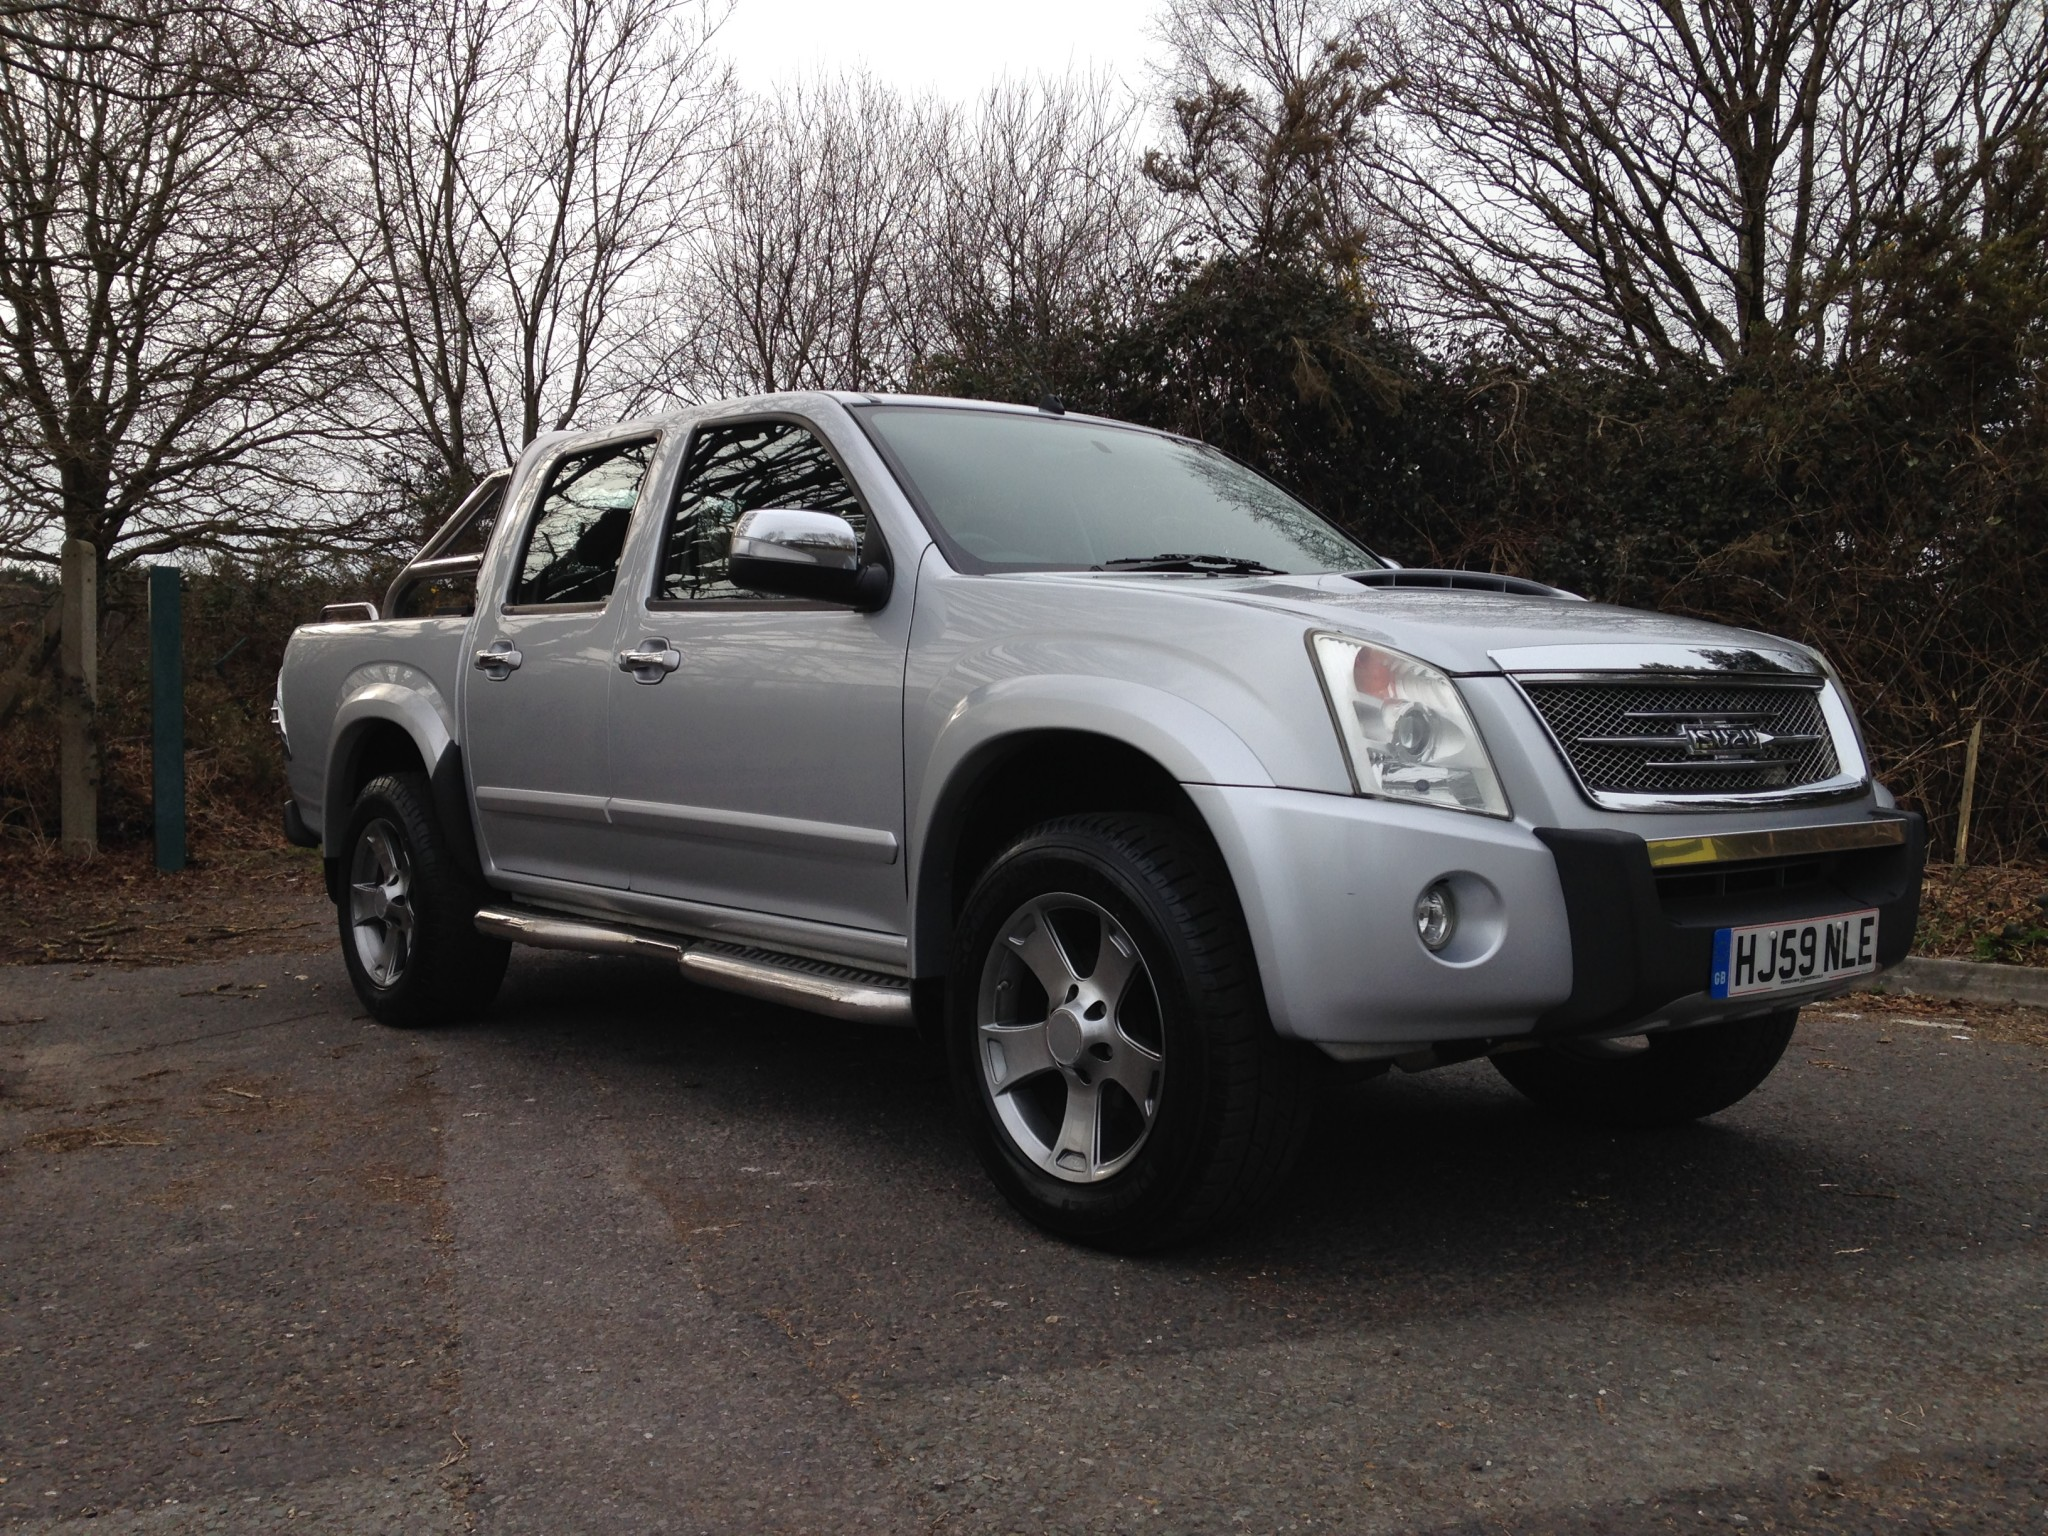 2019 Isuzu Rodeo 3.0 Denver photo - 2